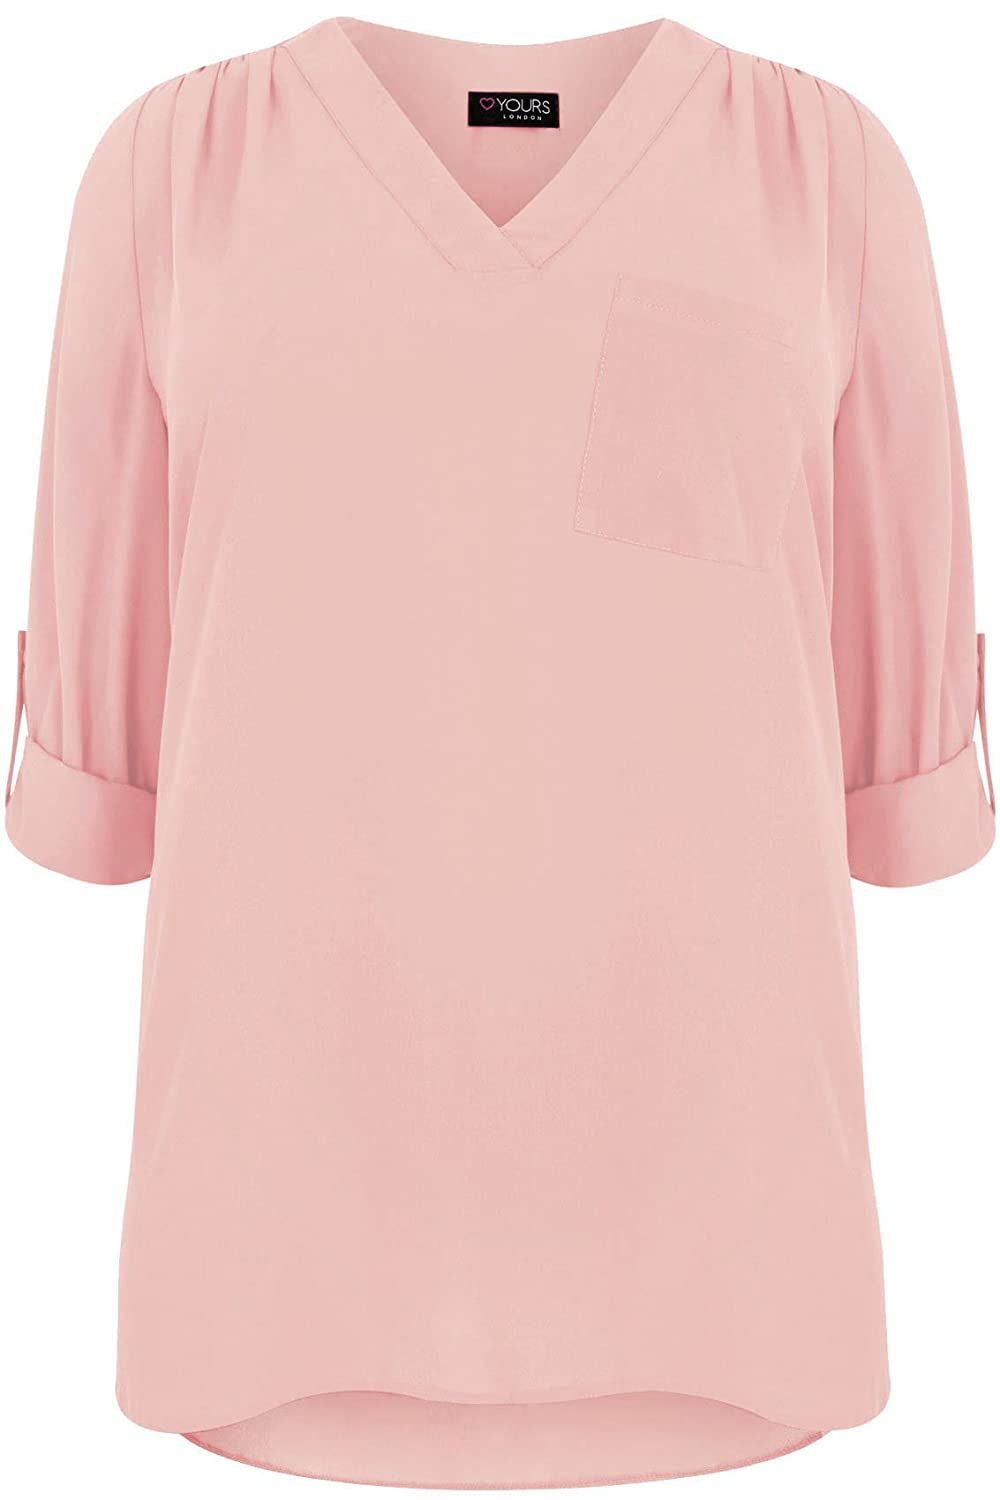 Yoursclothing Plus Size Womens Blush V-neck Blouse With Dipped Hem